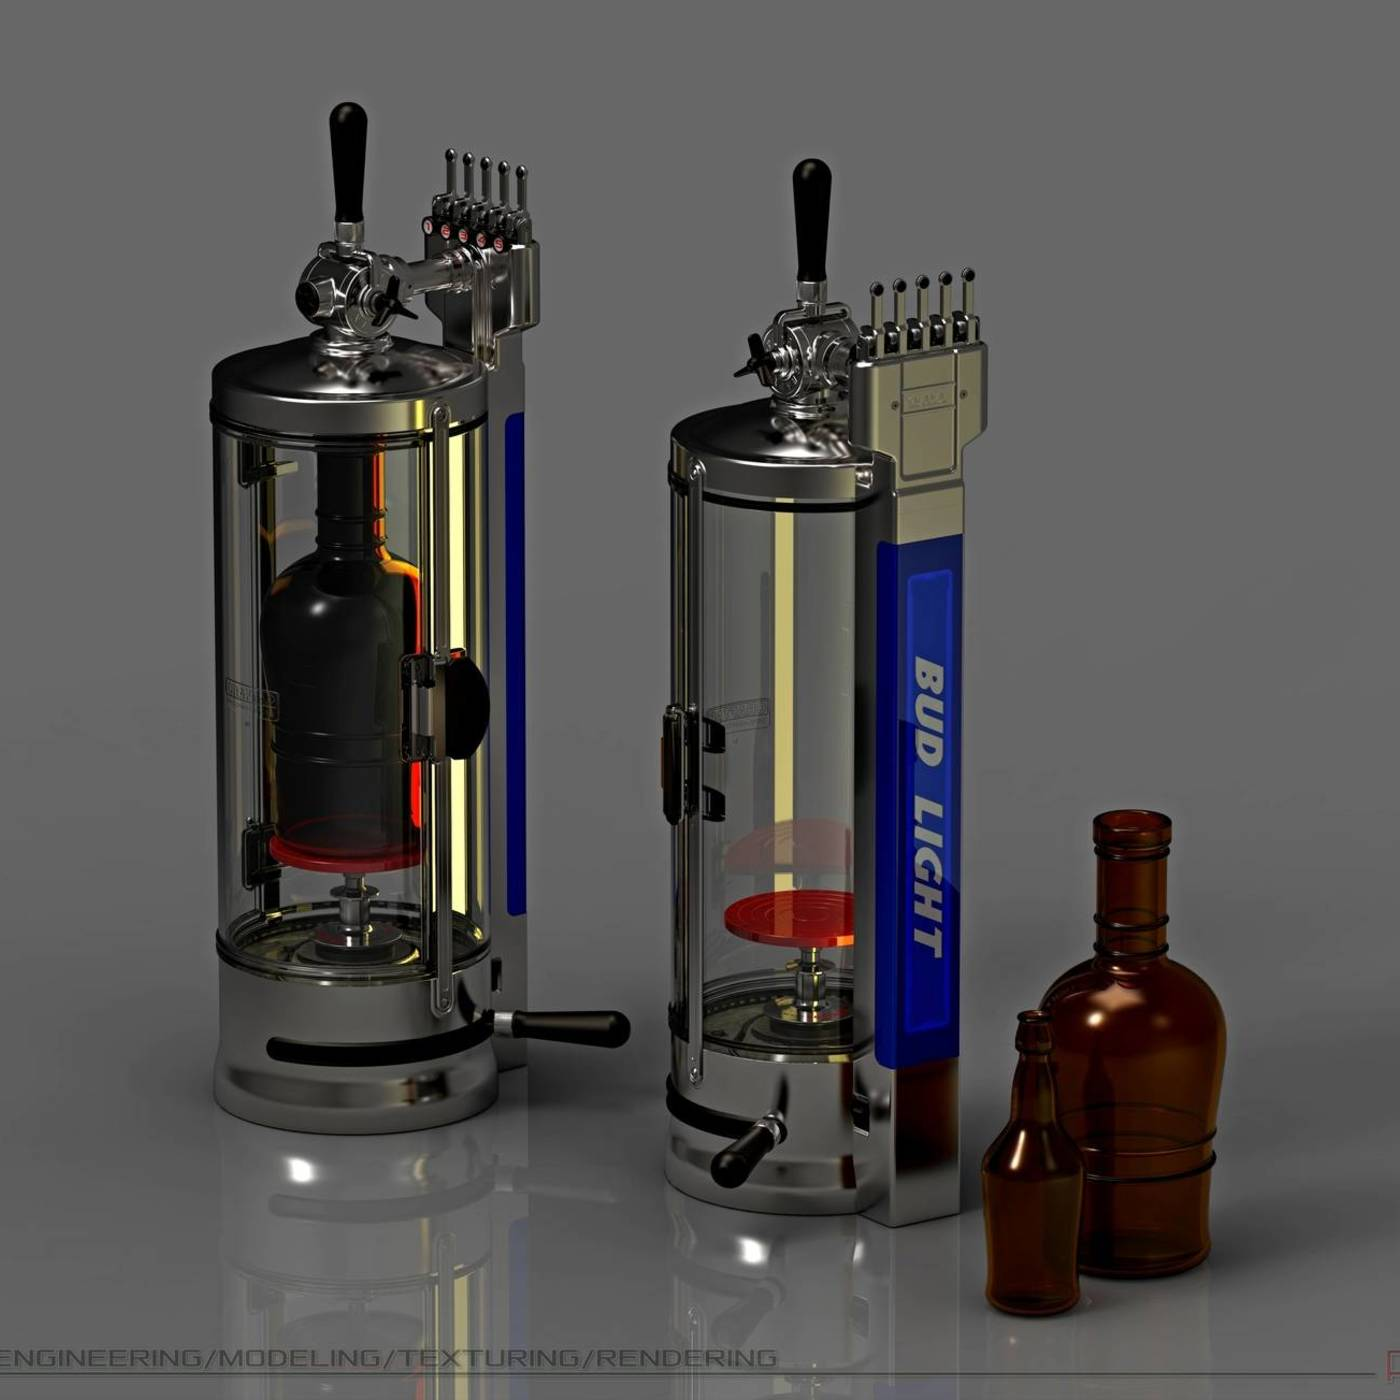 THE MACHINE IS SAFE, NON-FOAMING BEER BOTTLING IN GLASS CONTAINERS.